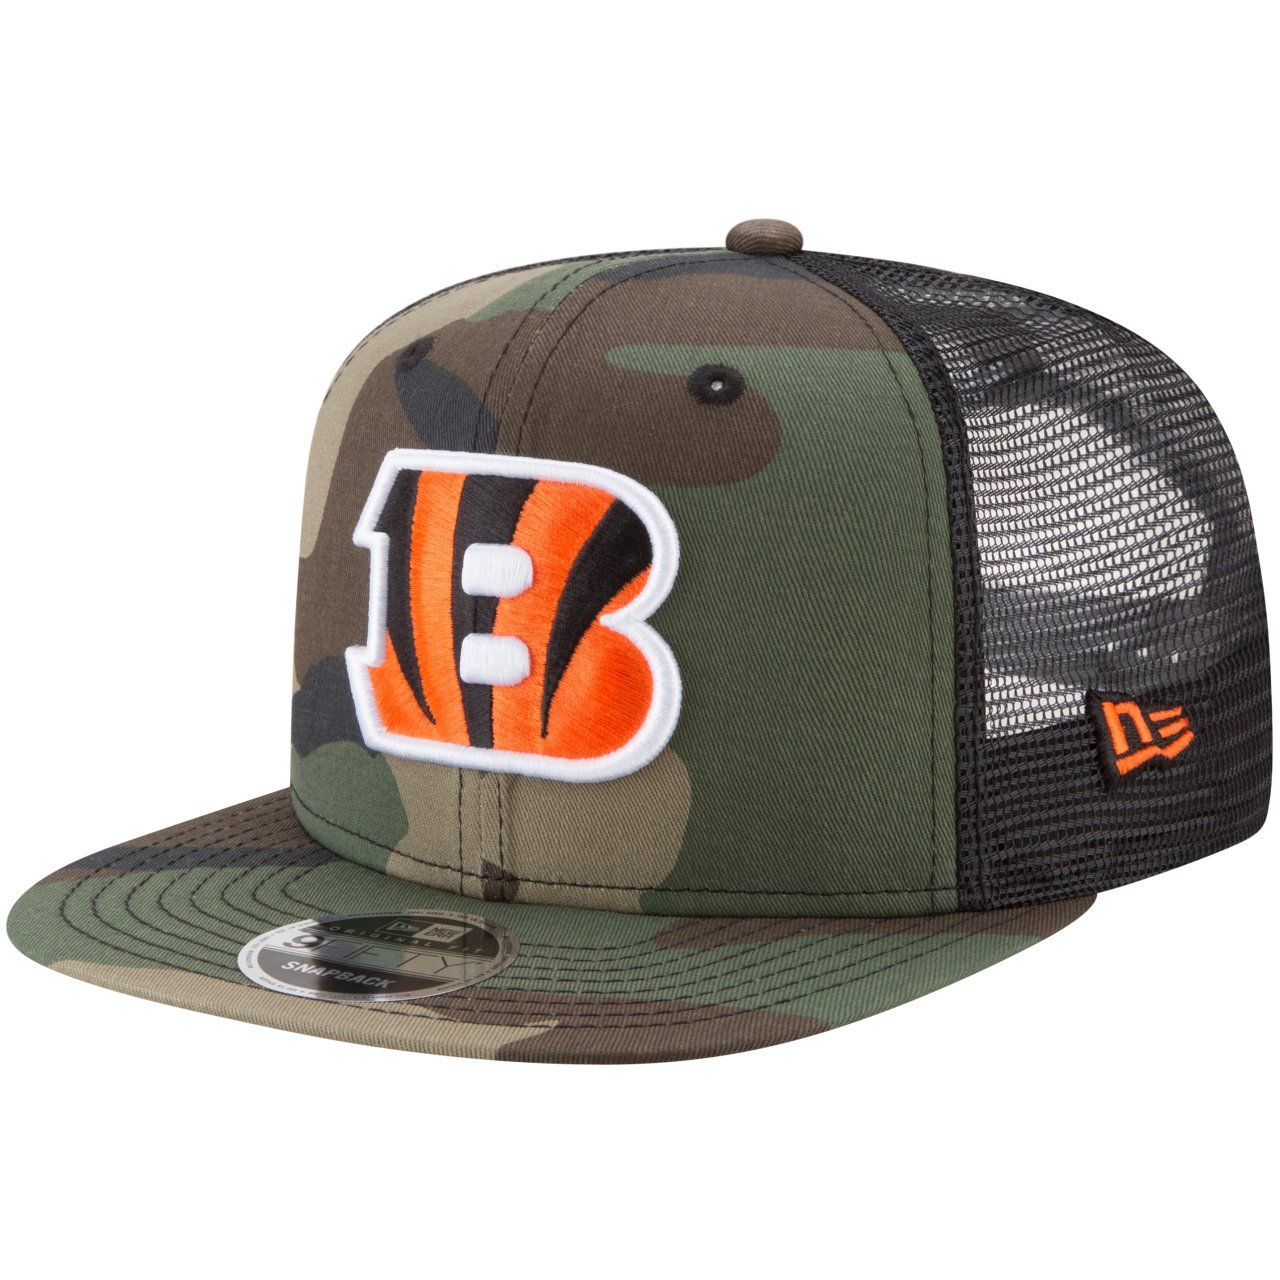 amfoo - New Era 9Fifty Mesh Snapback Cap Cincinnati Bengals wood